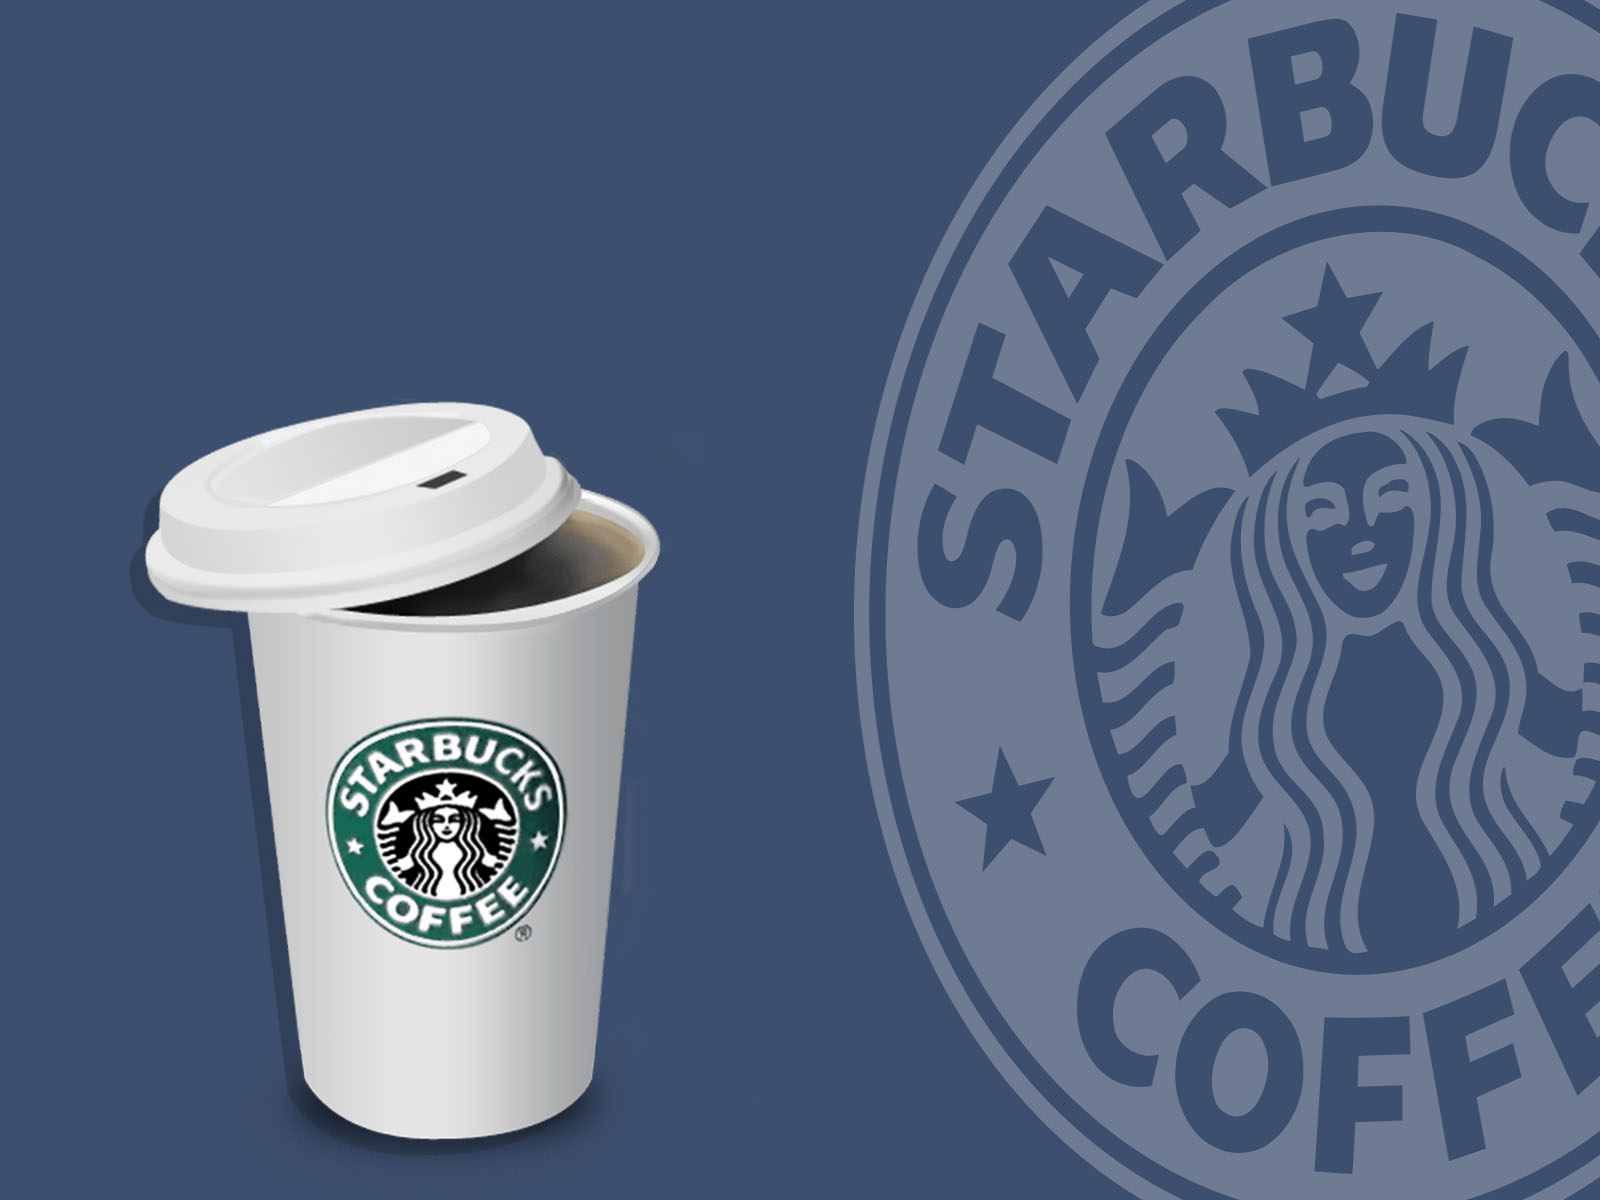 starbucks coffee ppt backgrounds - foods & drinks templates - ppt, Modern powerpoint